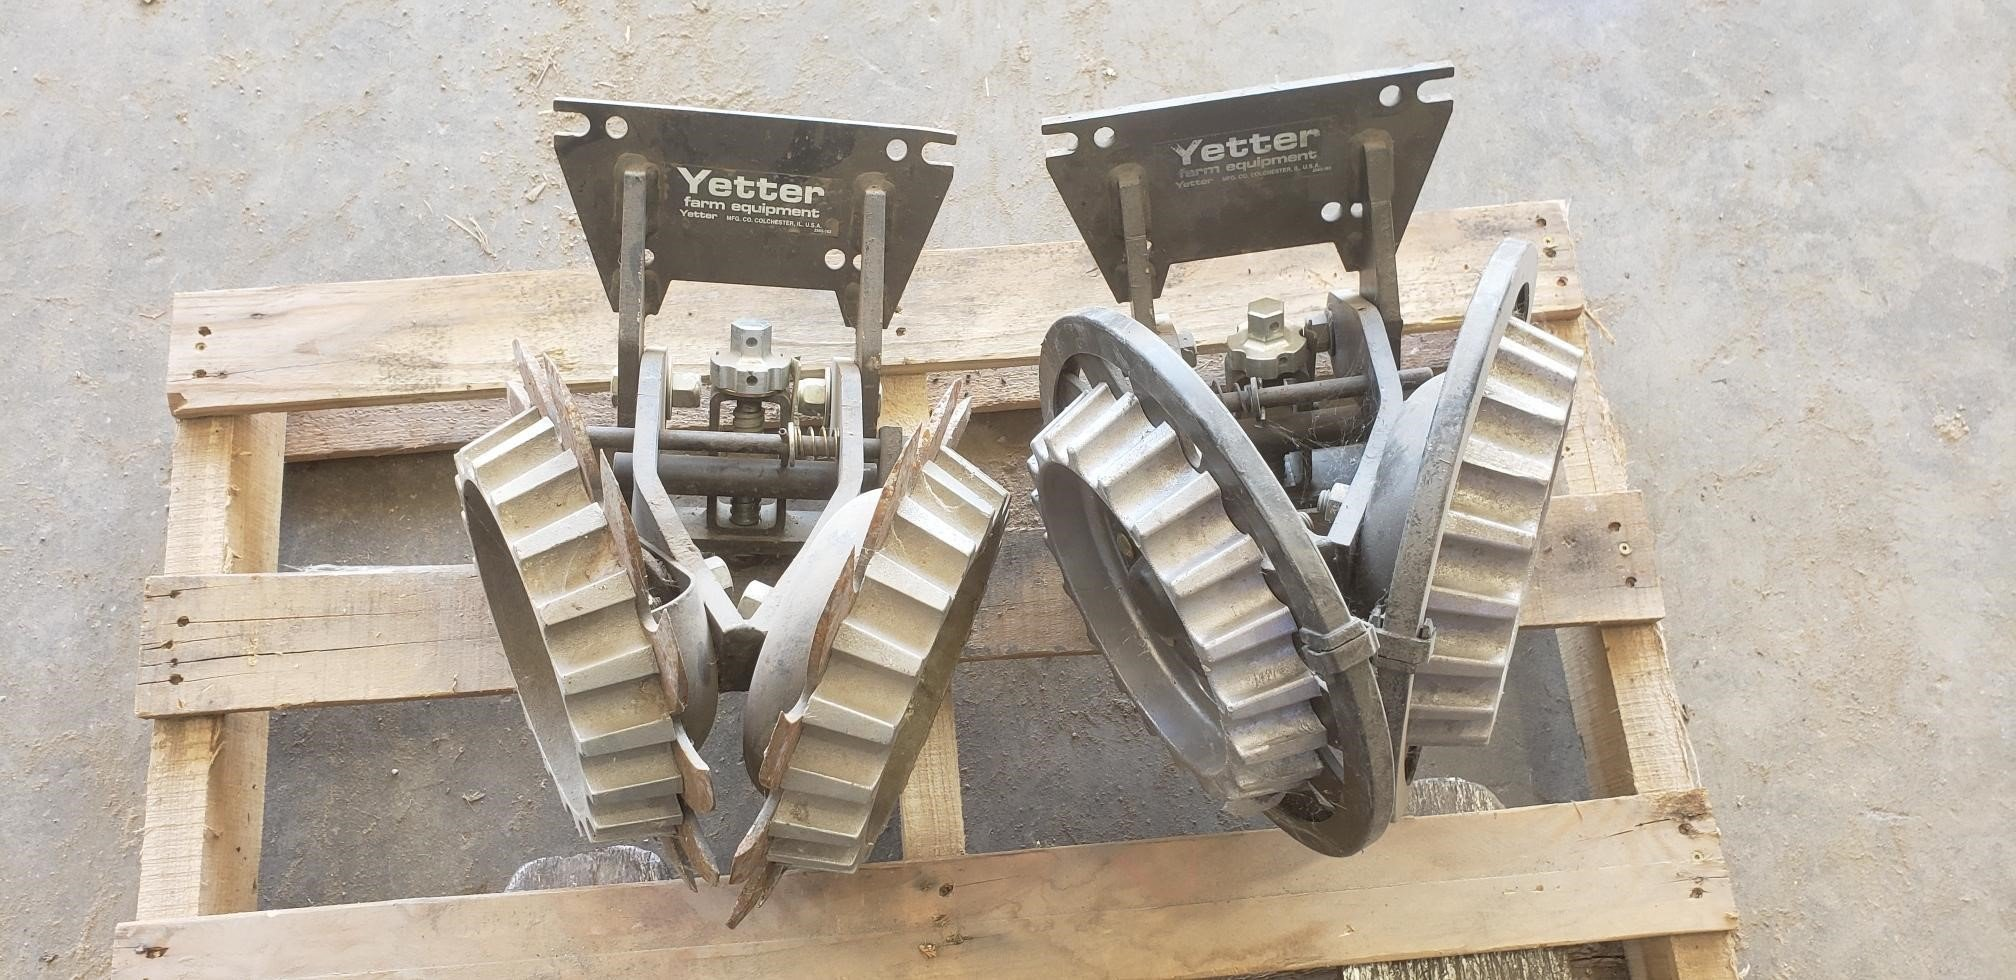 Yetter Screw Adjust Residue Managers Planter and Drill Attachment